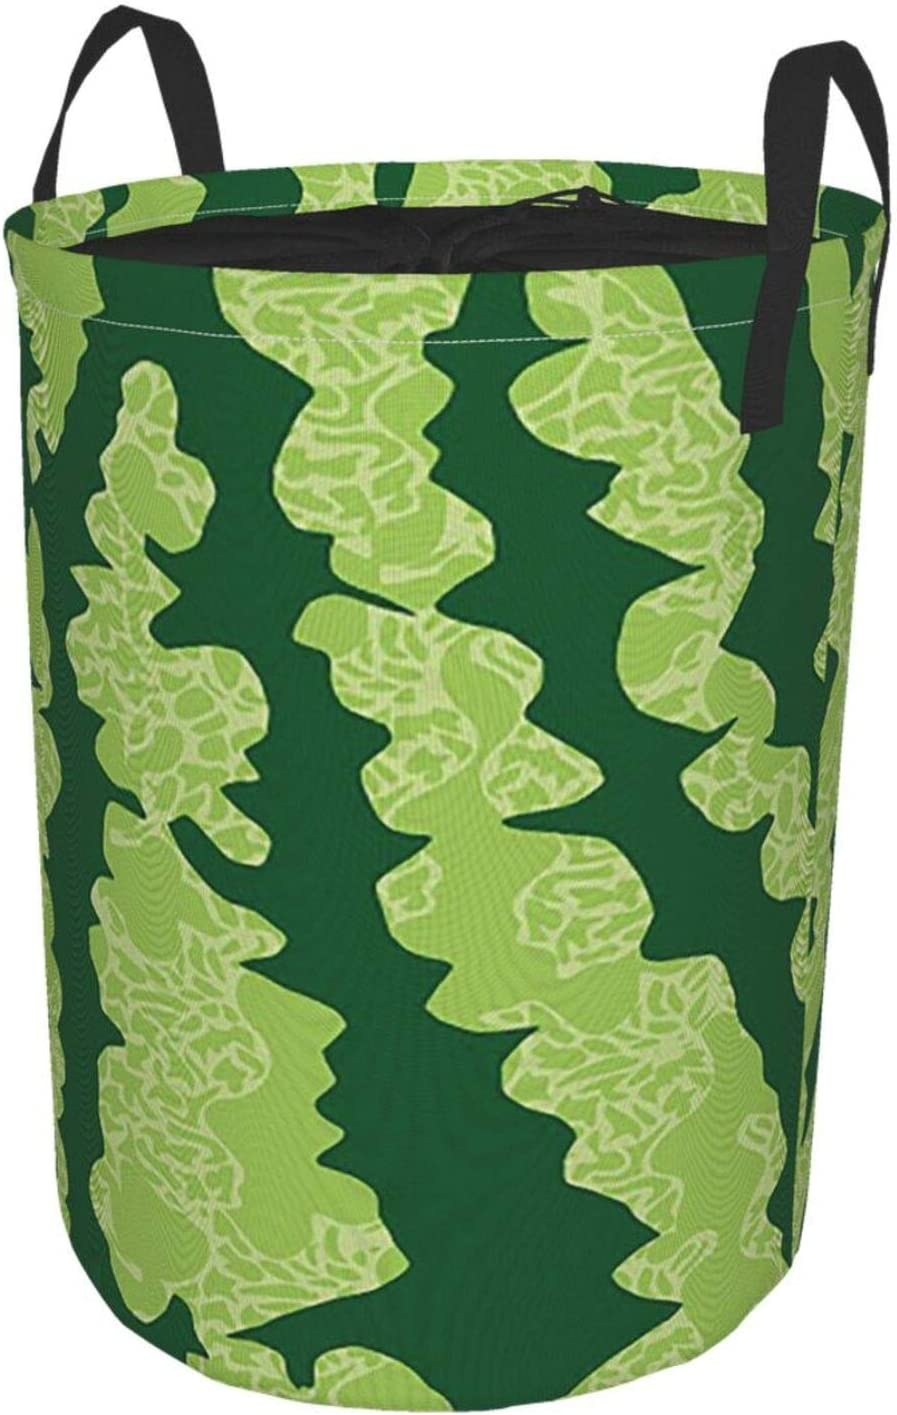 Watermelon Rindstorage Outlet ☆ Free Shipping Outlet ☆ Free Shipping Baskets Canvas Laundry Coll Hamper Fabric